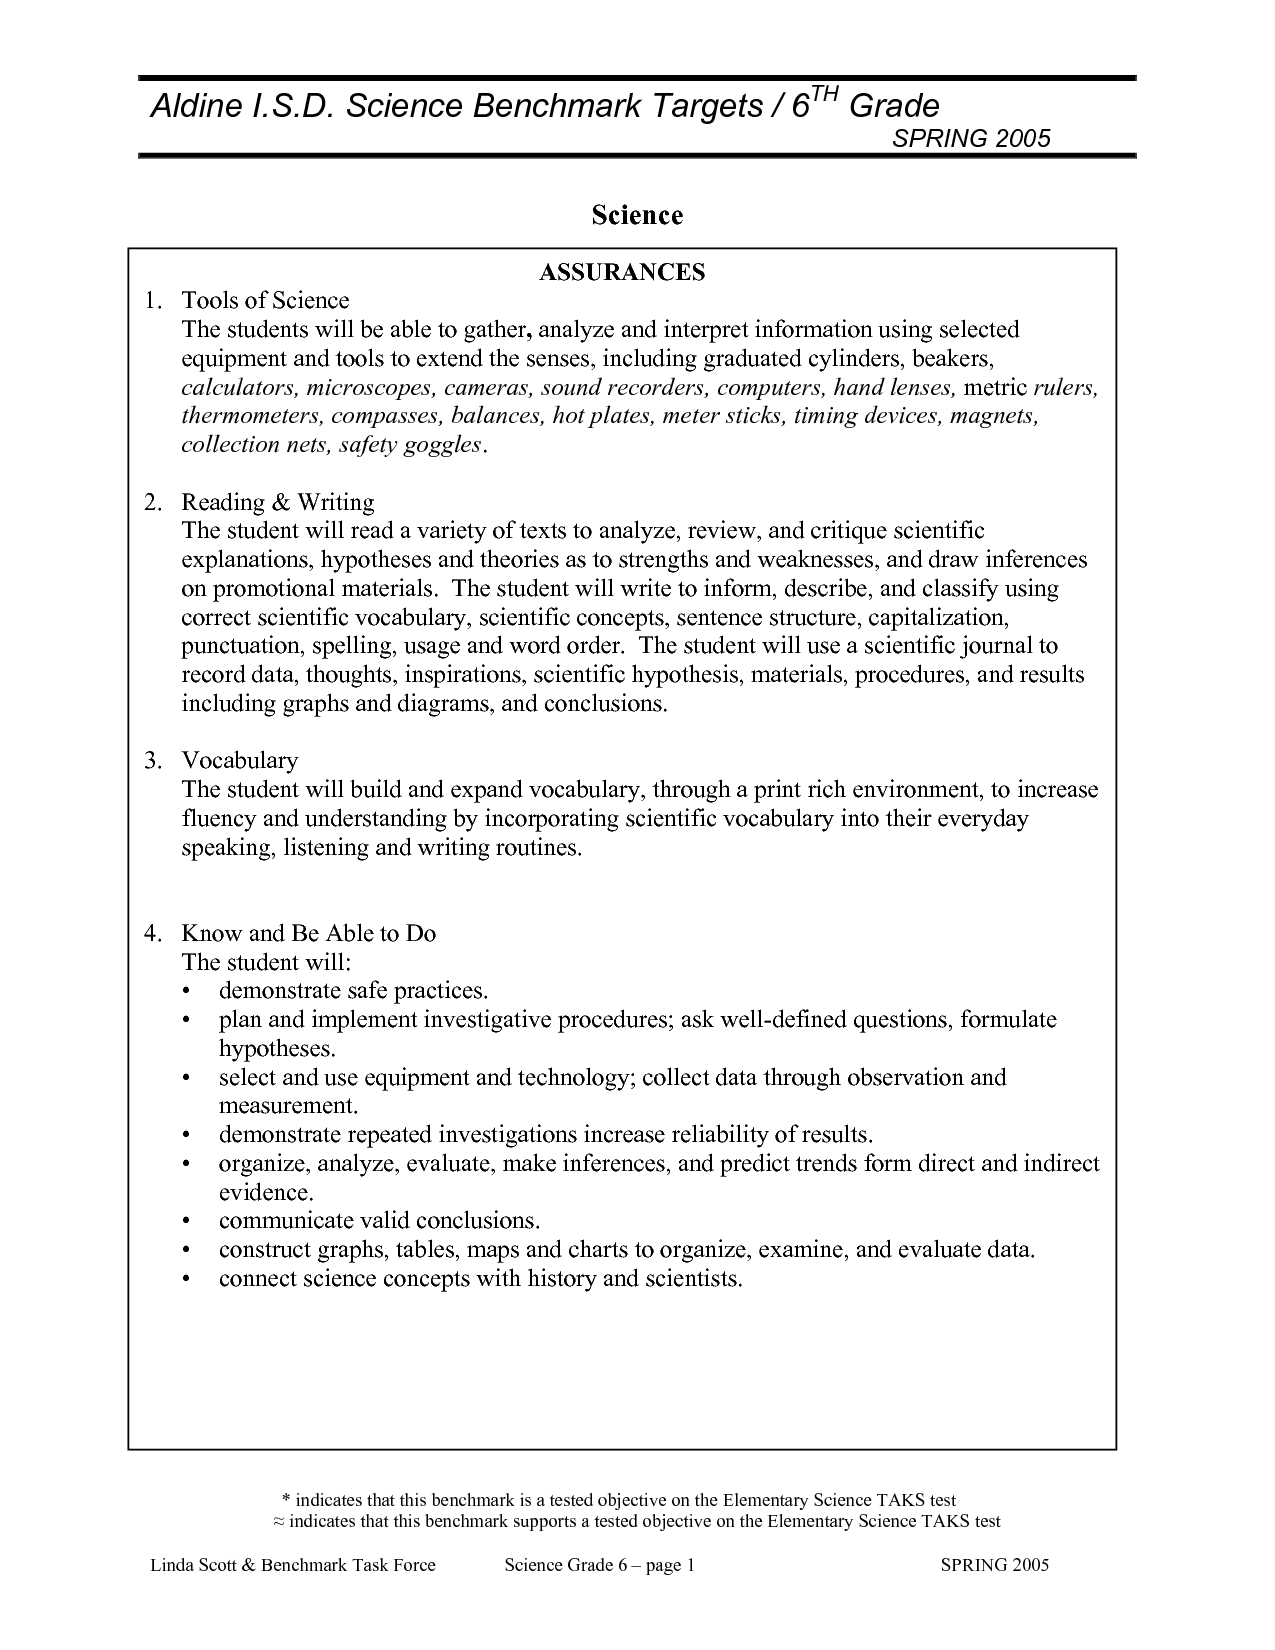 Science Worksheet Category Page 2